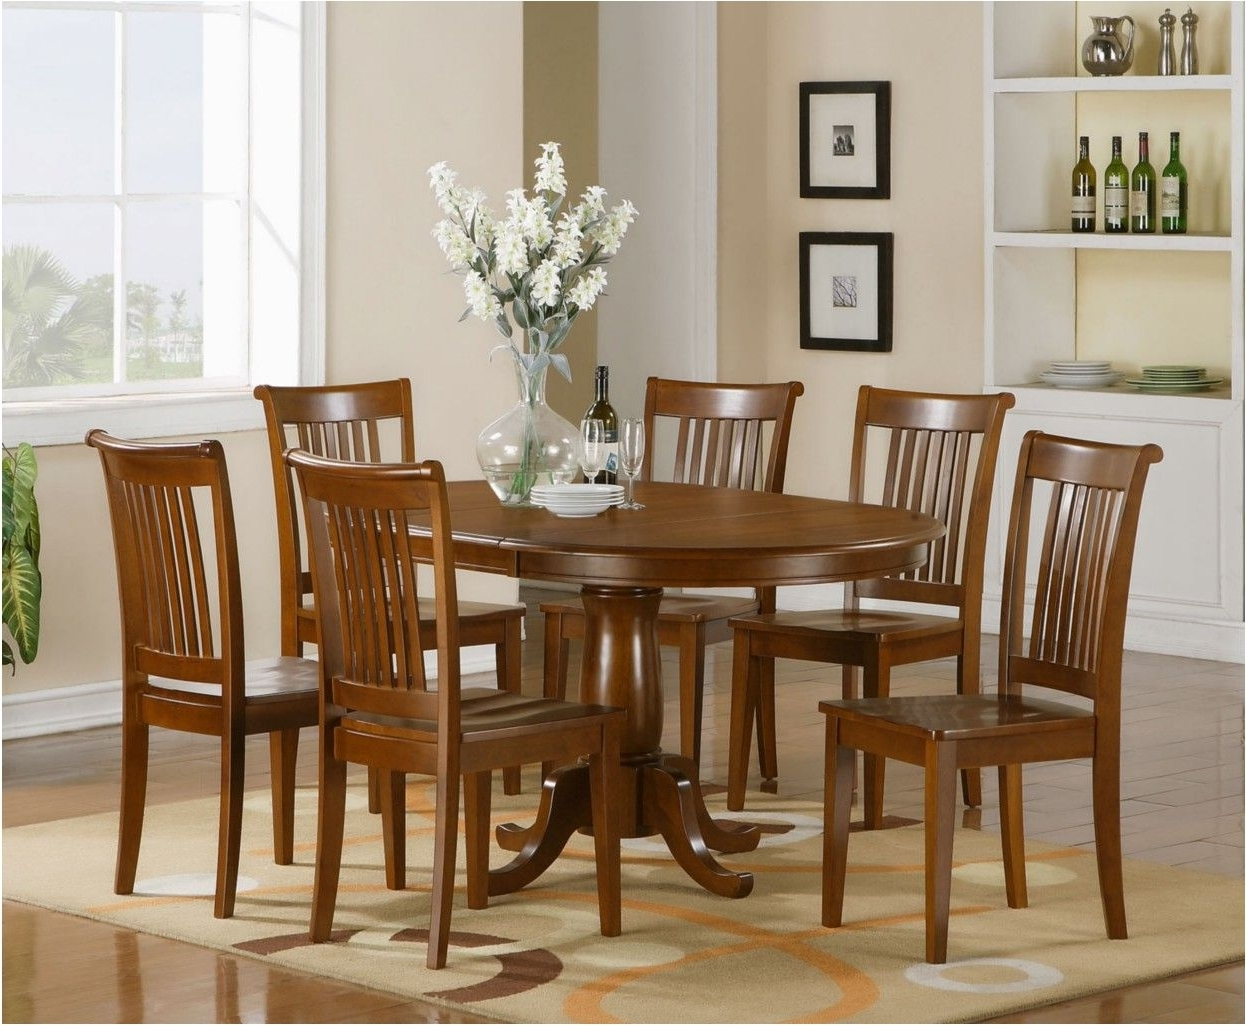 Delightful Dining Room Chair Sets 6 Dining Room Decor Ideas And For Well Known Dining Table Chair Sets (View 11 of 25)